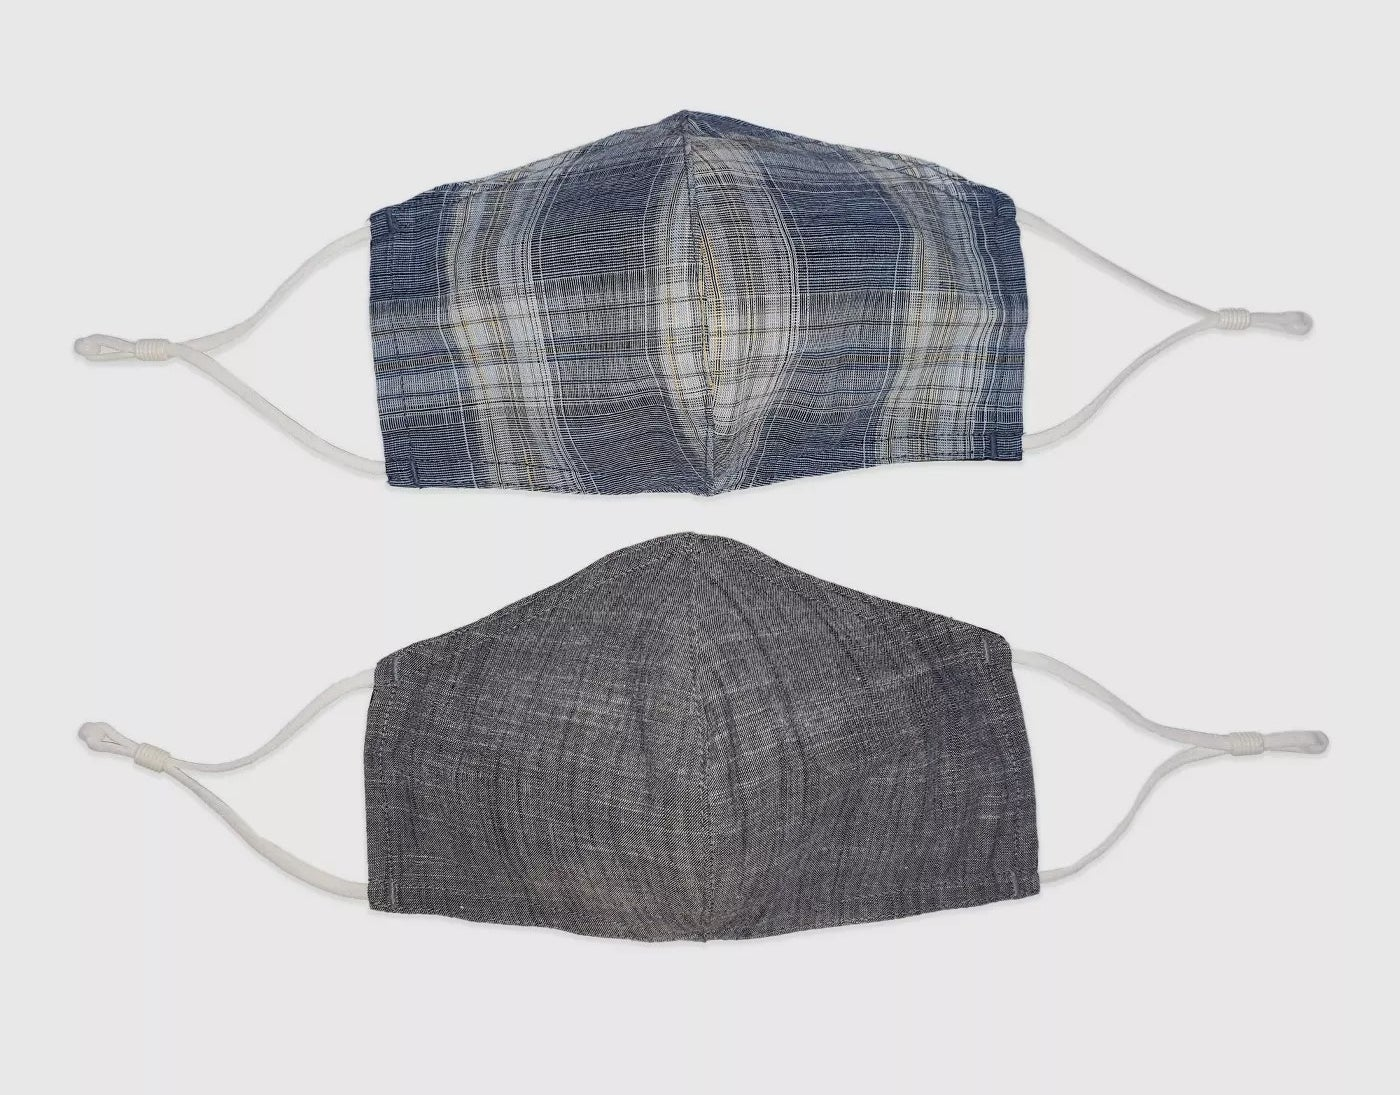 The plaid and gray fabric masks